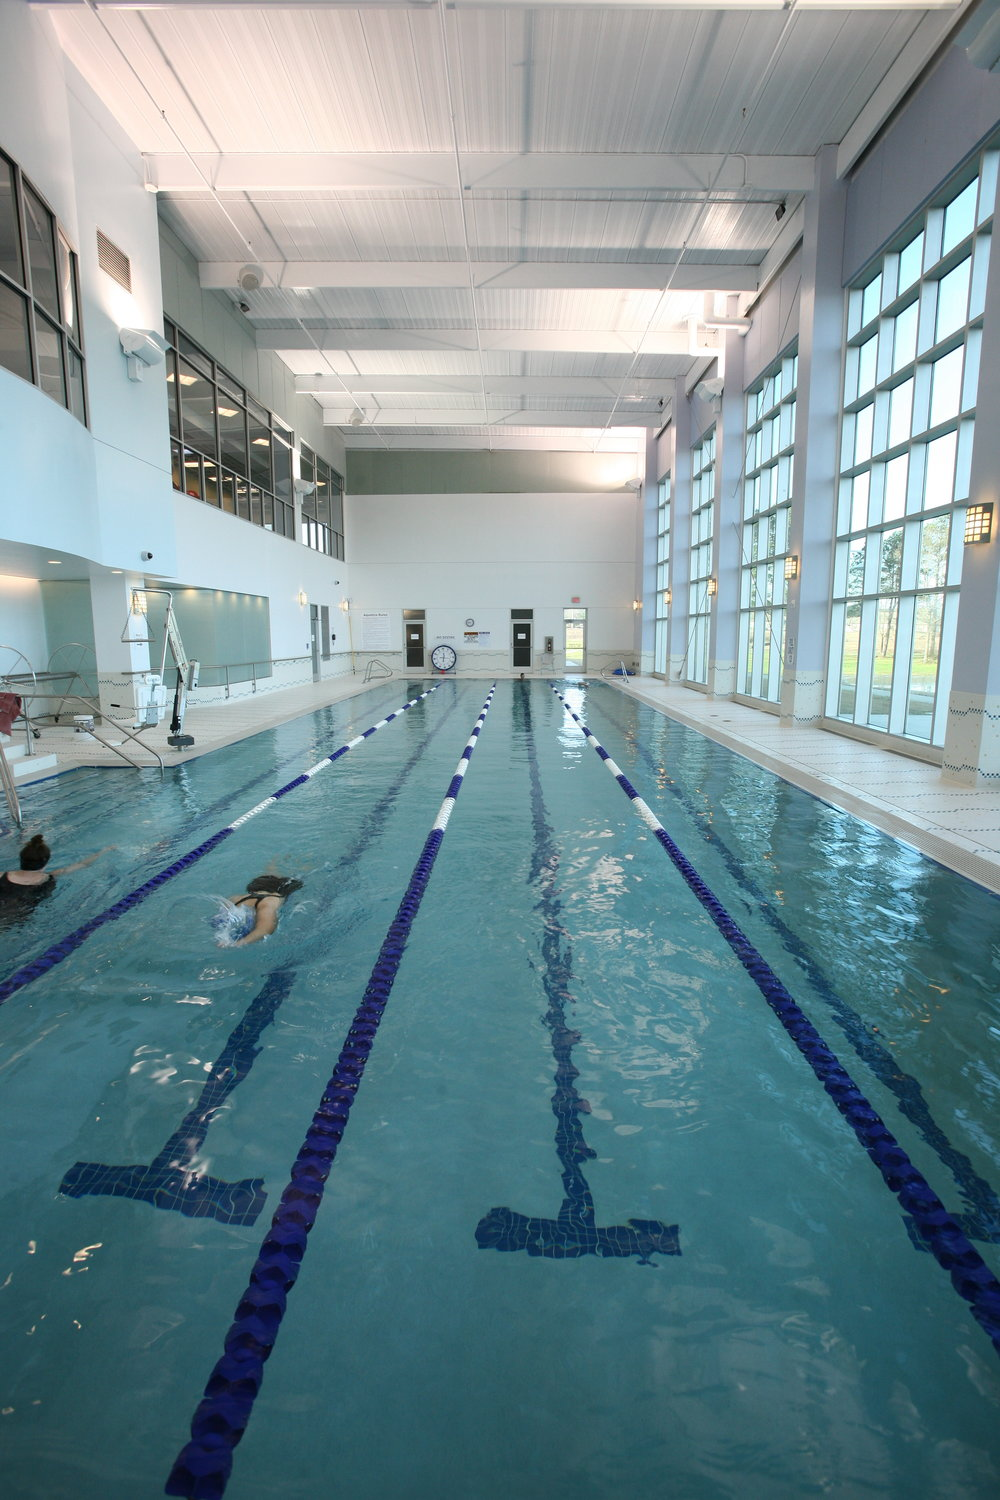 - Located within the Institute for Healthy Living, the Aquatic Center features a 25-meter heated four-lane lap pool designed with a zero step entrance ramp, heated lazy river resistance pool, cold water therapeutic immersion pool and four hot tubs, both private and co-ed. The center offers an adult fitness swim program, senior exercise classes, children's swimming lessons, aquatic exercise, aquatic arthritis classes and prenatal exercise classes.Click here to view the Aquatics Center Policies.